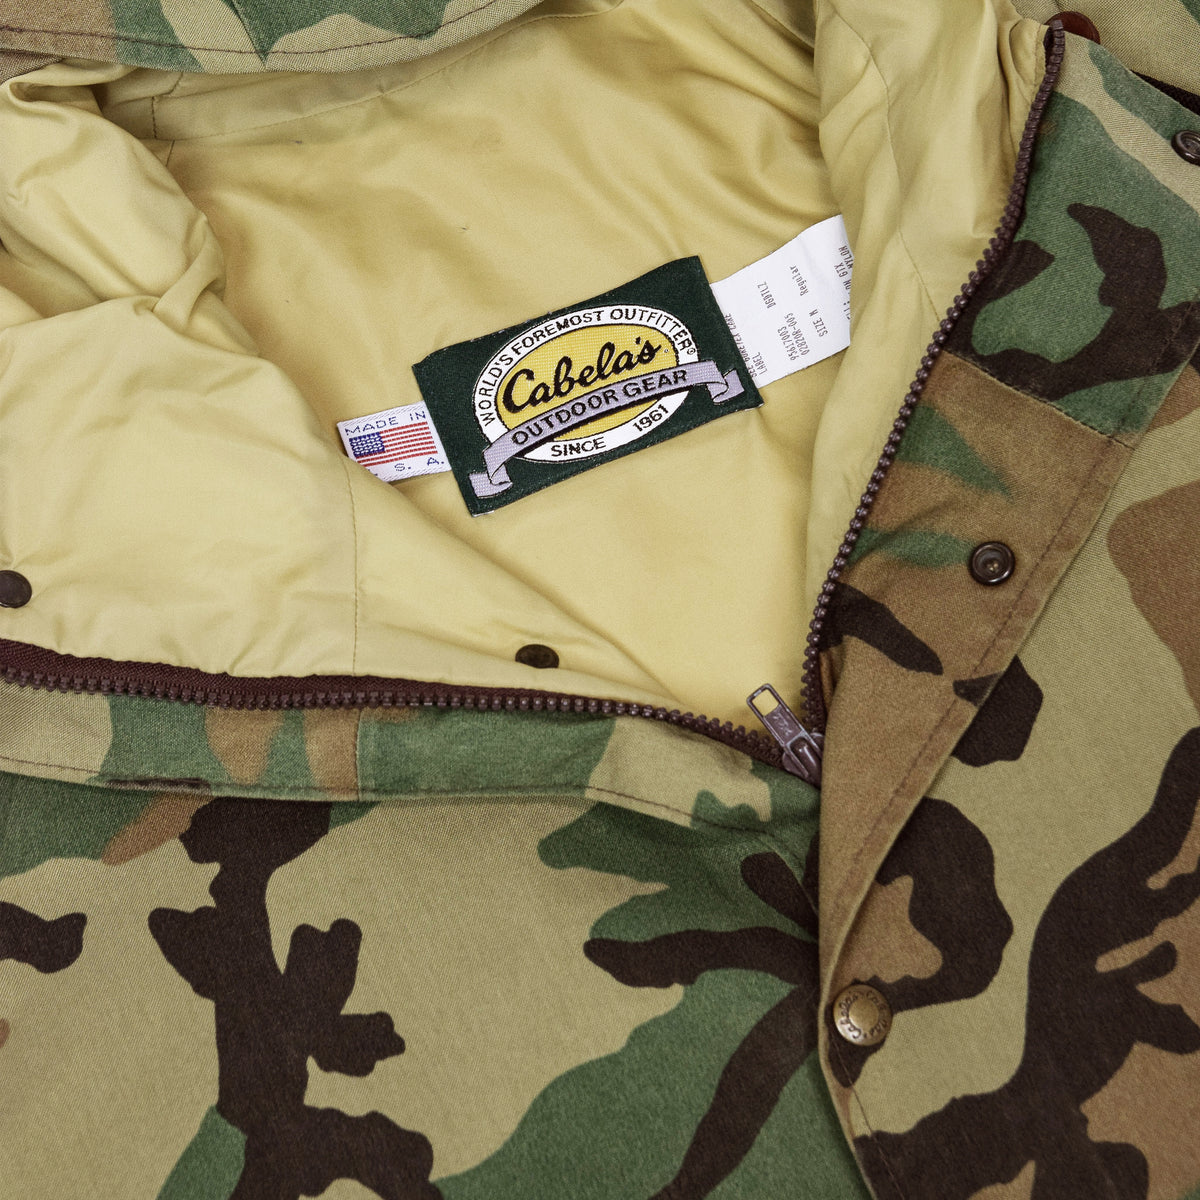 Vintage Cabelas Gore Tex Woodland Camo Hunting Jacket Waterproof Parka M label